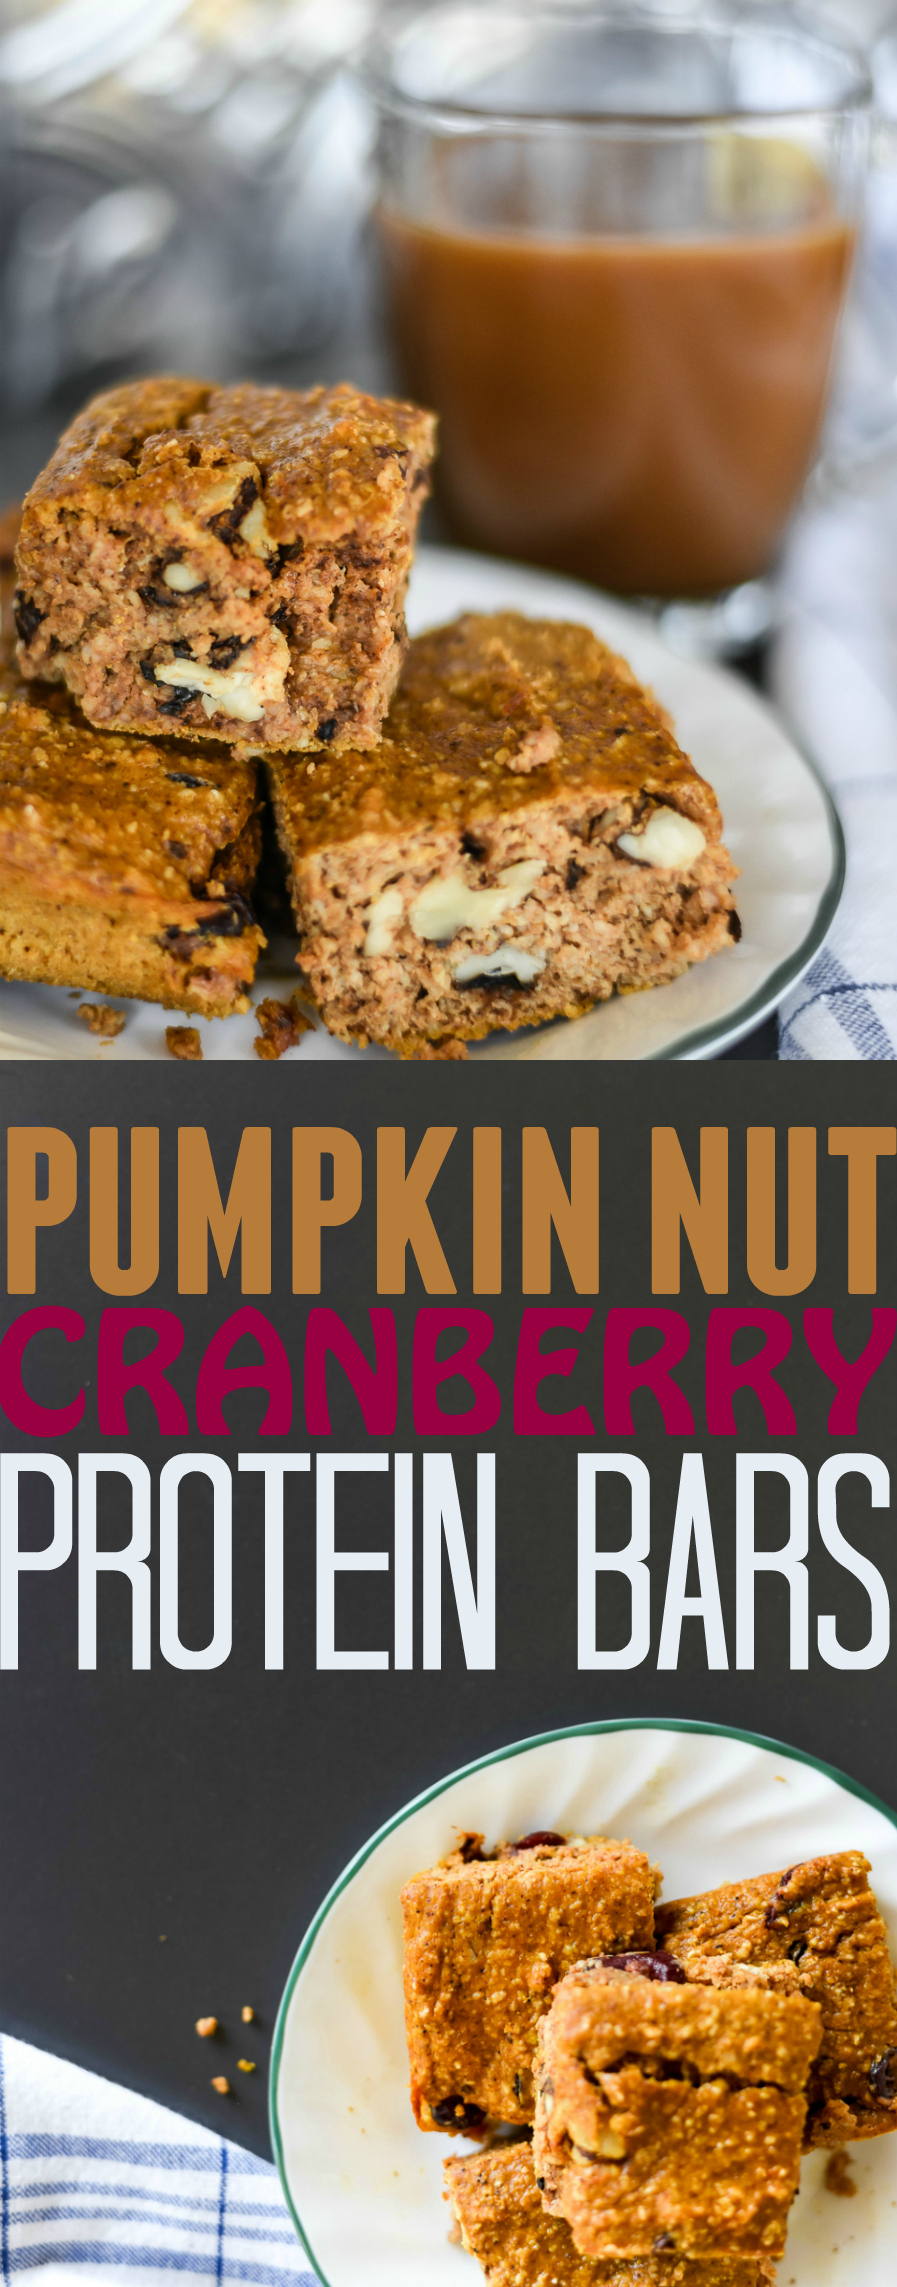 pumpkin-protein-bars-with-cranberry-and-walnuts